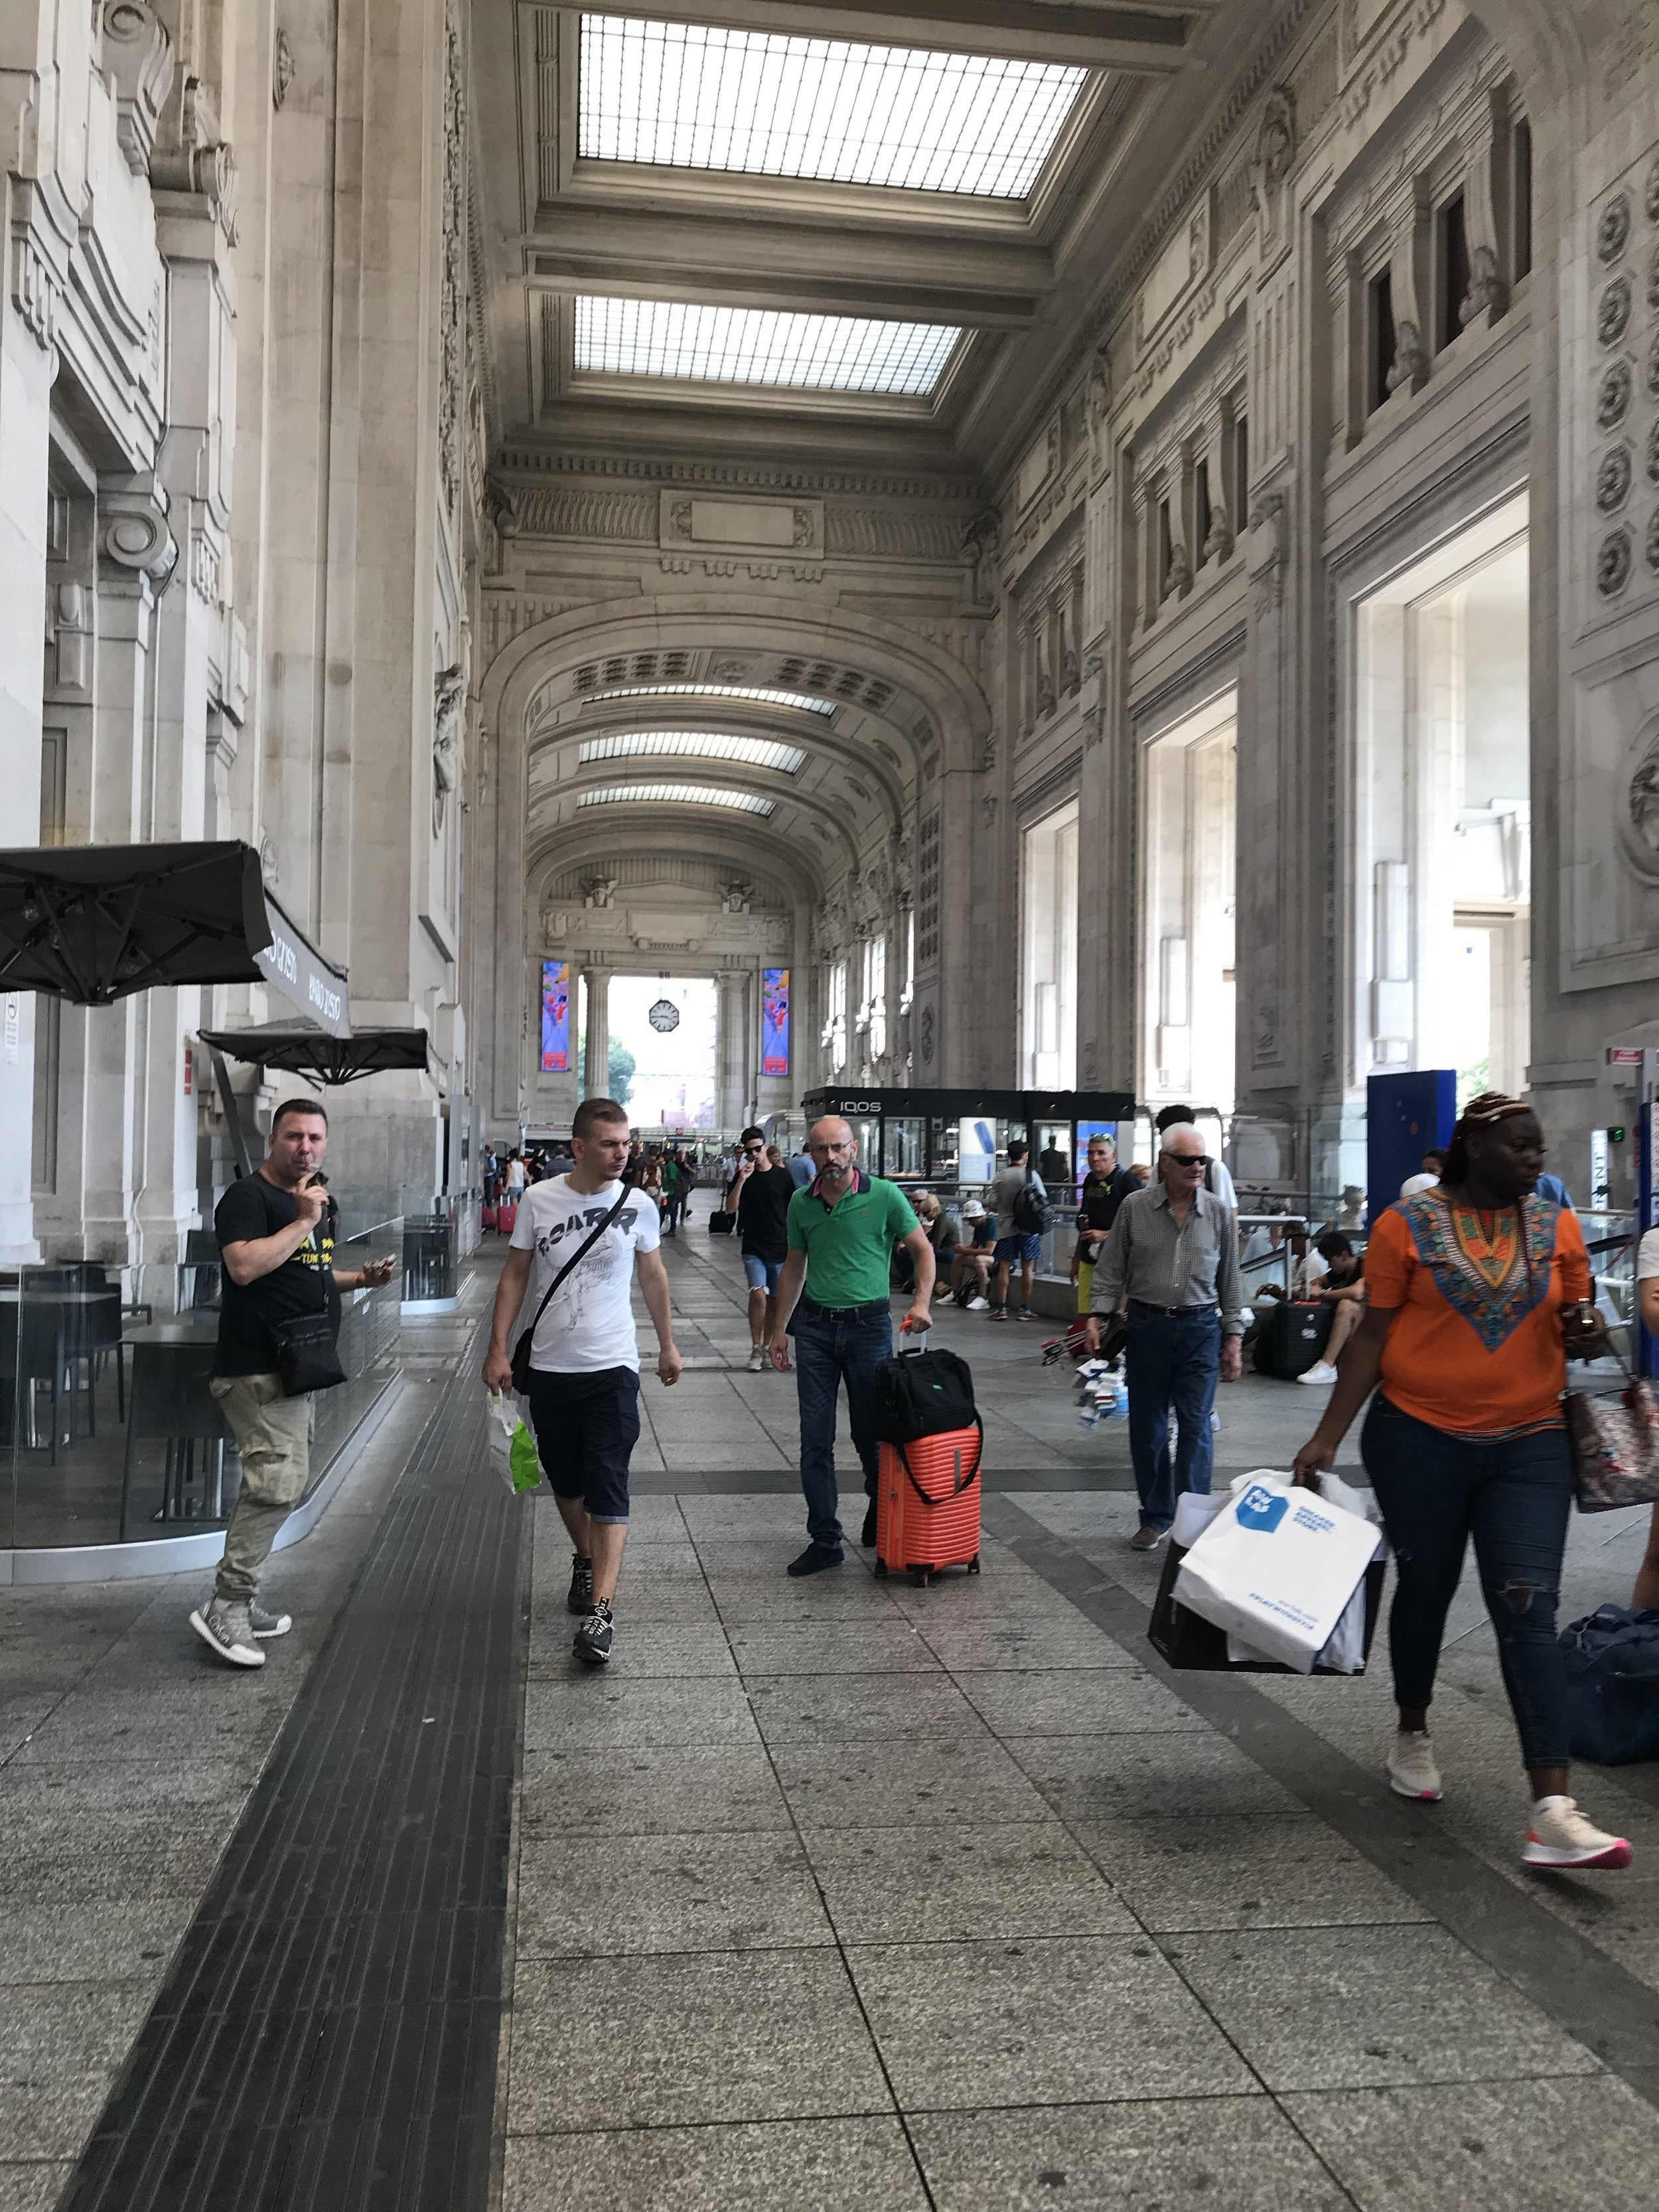 The cavernous Milano Centrale Station, the terminus for the Malpensa airport express train